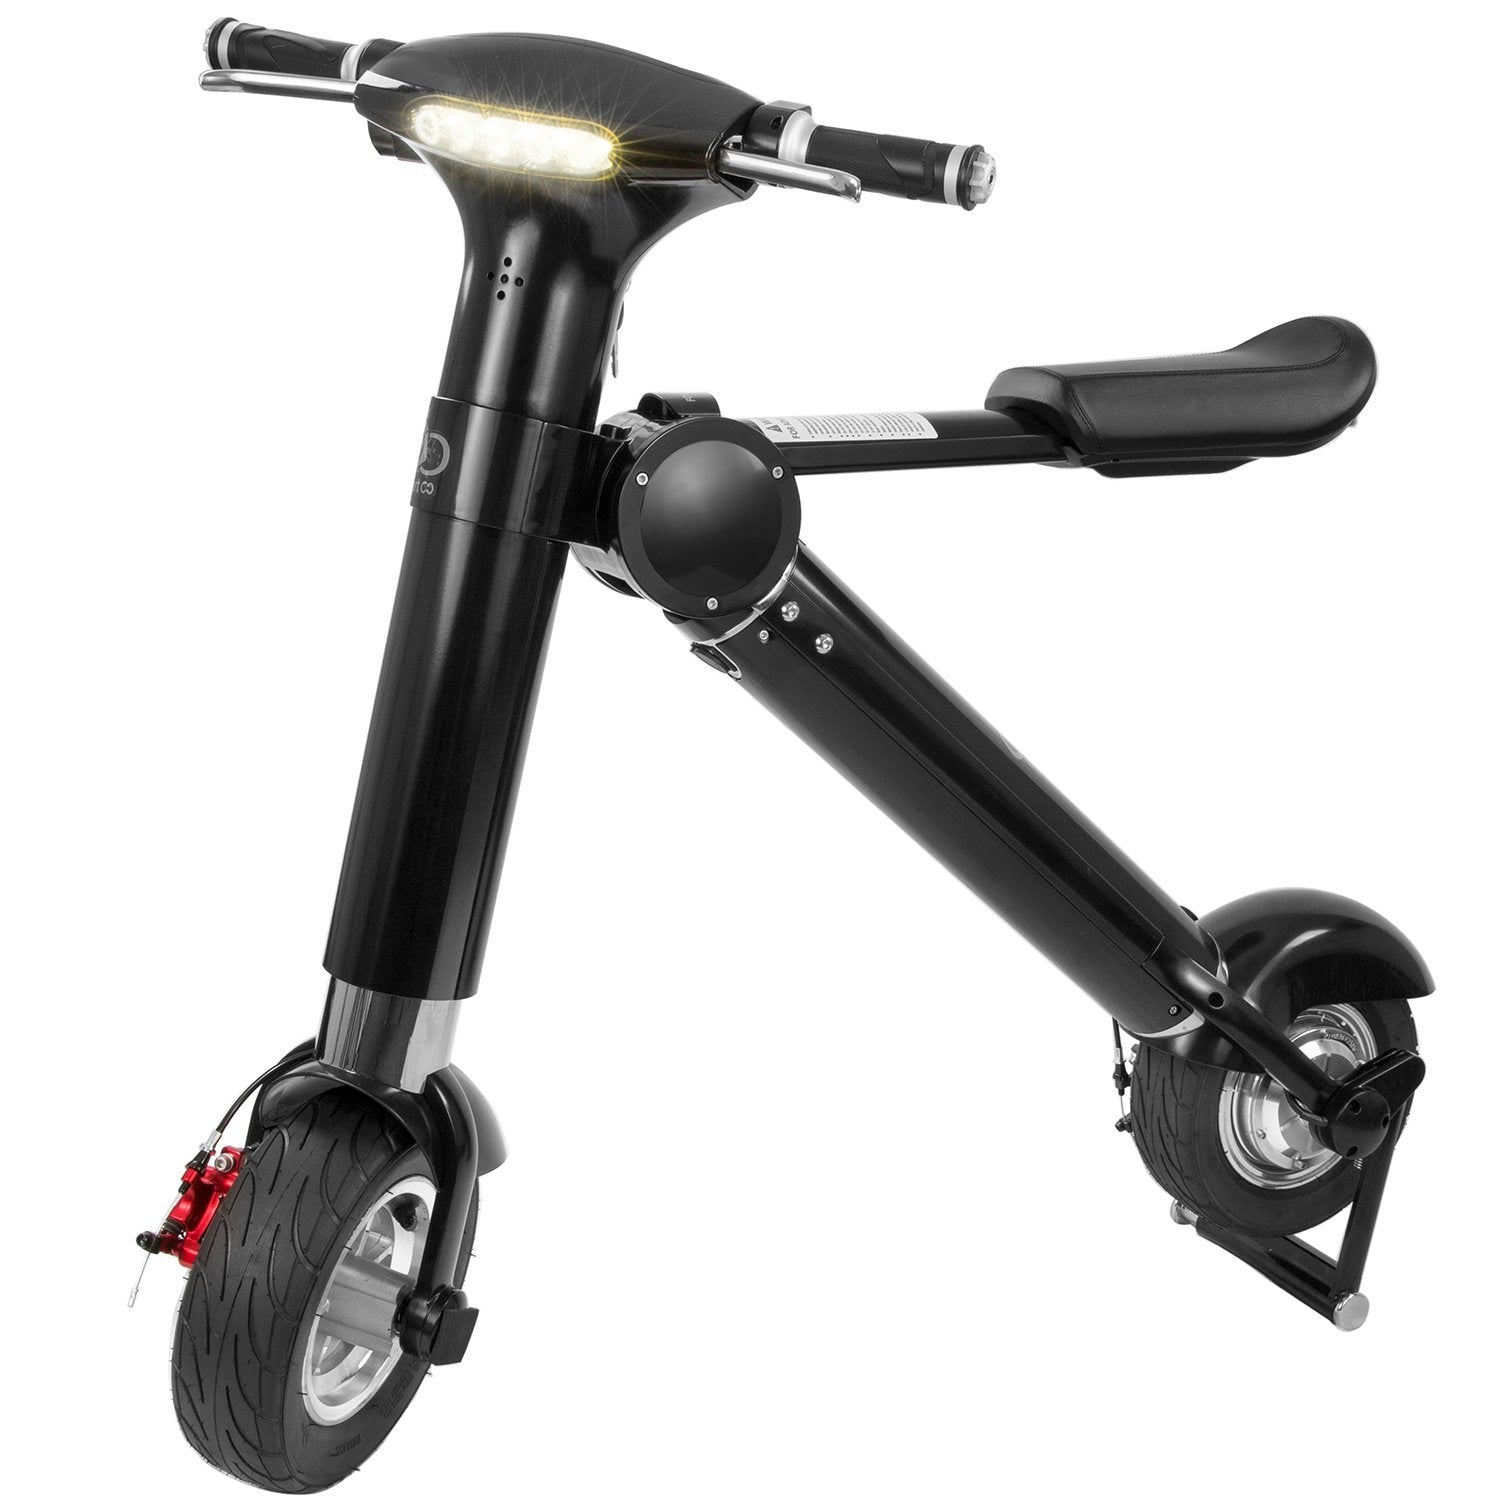 Aobsmartgo Folding Electric Scooter W 22 Mile Range And 20 Mph Top